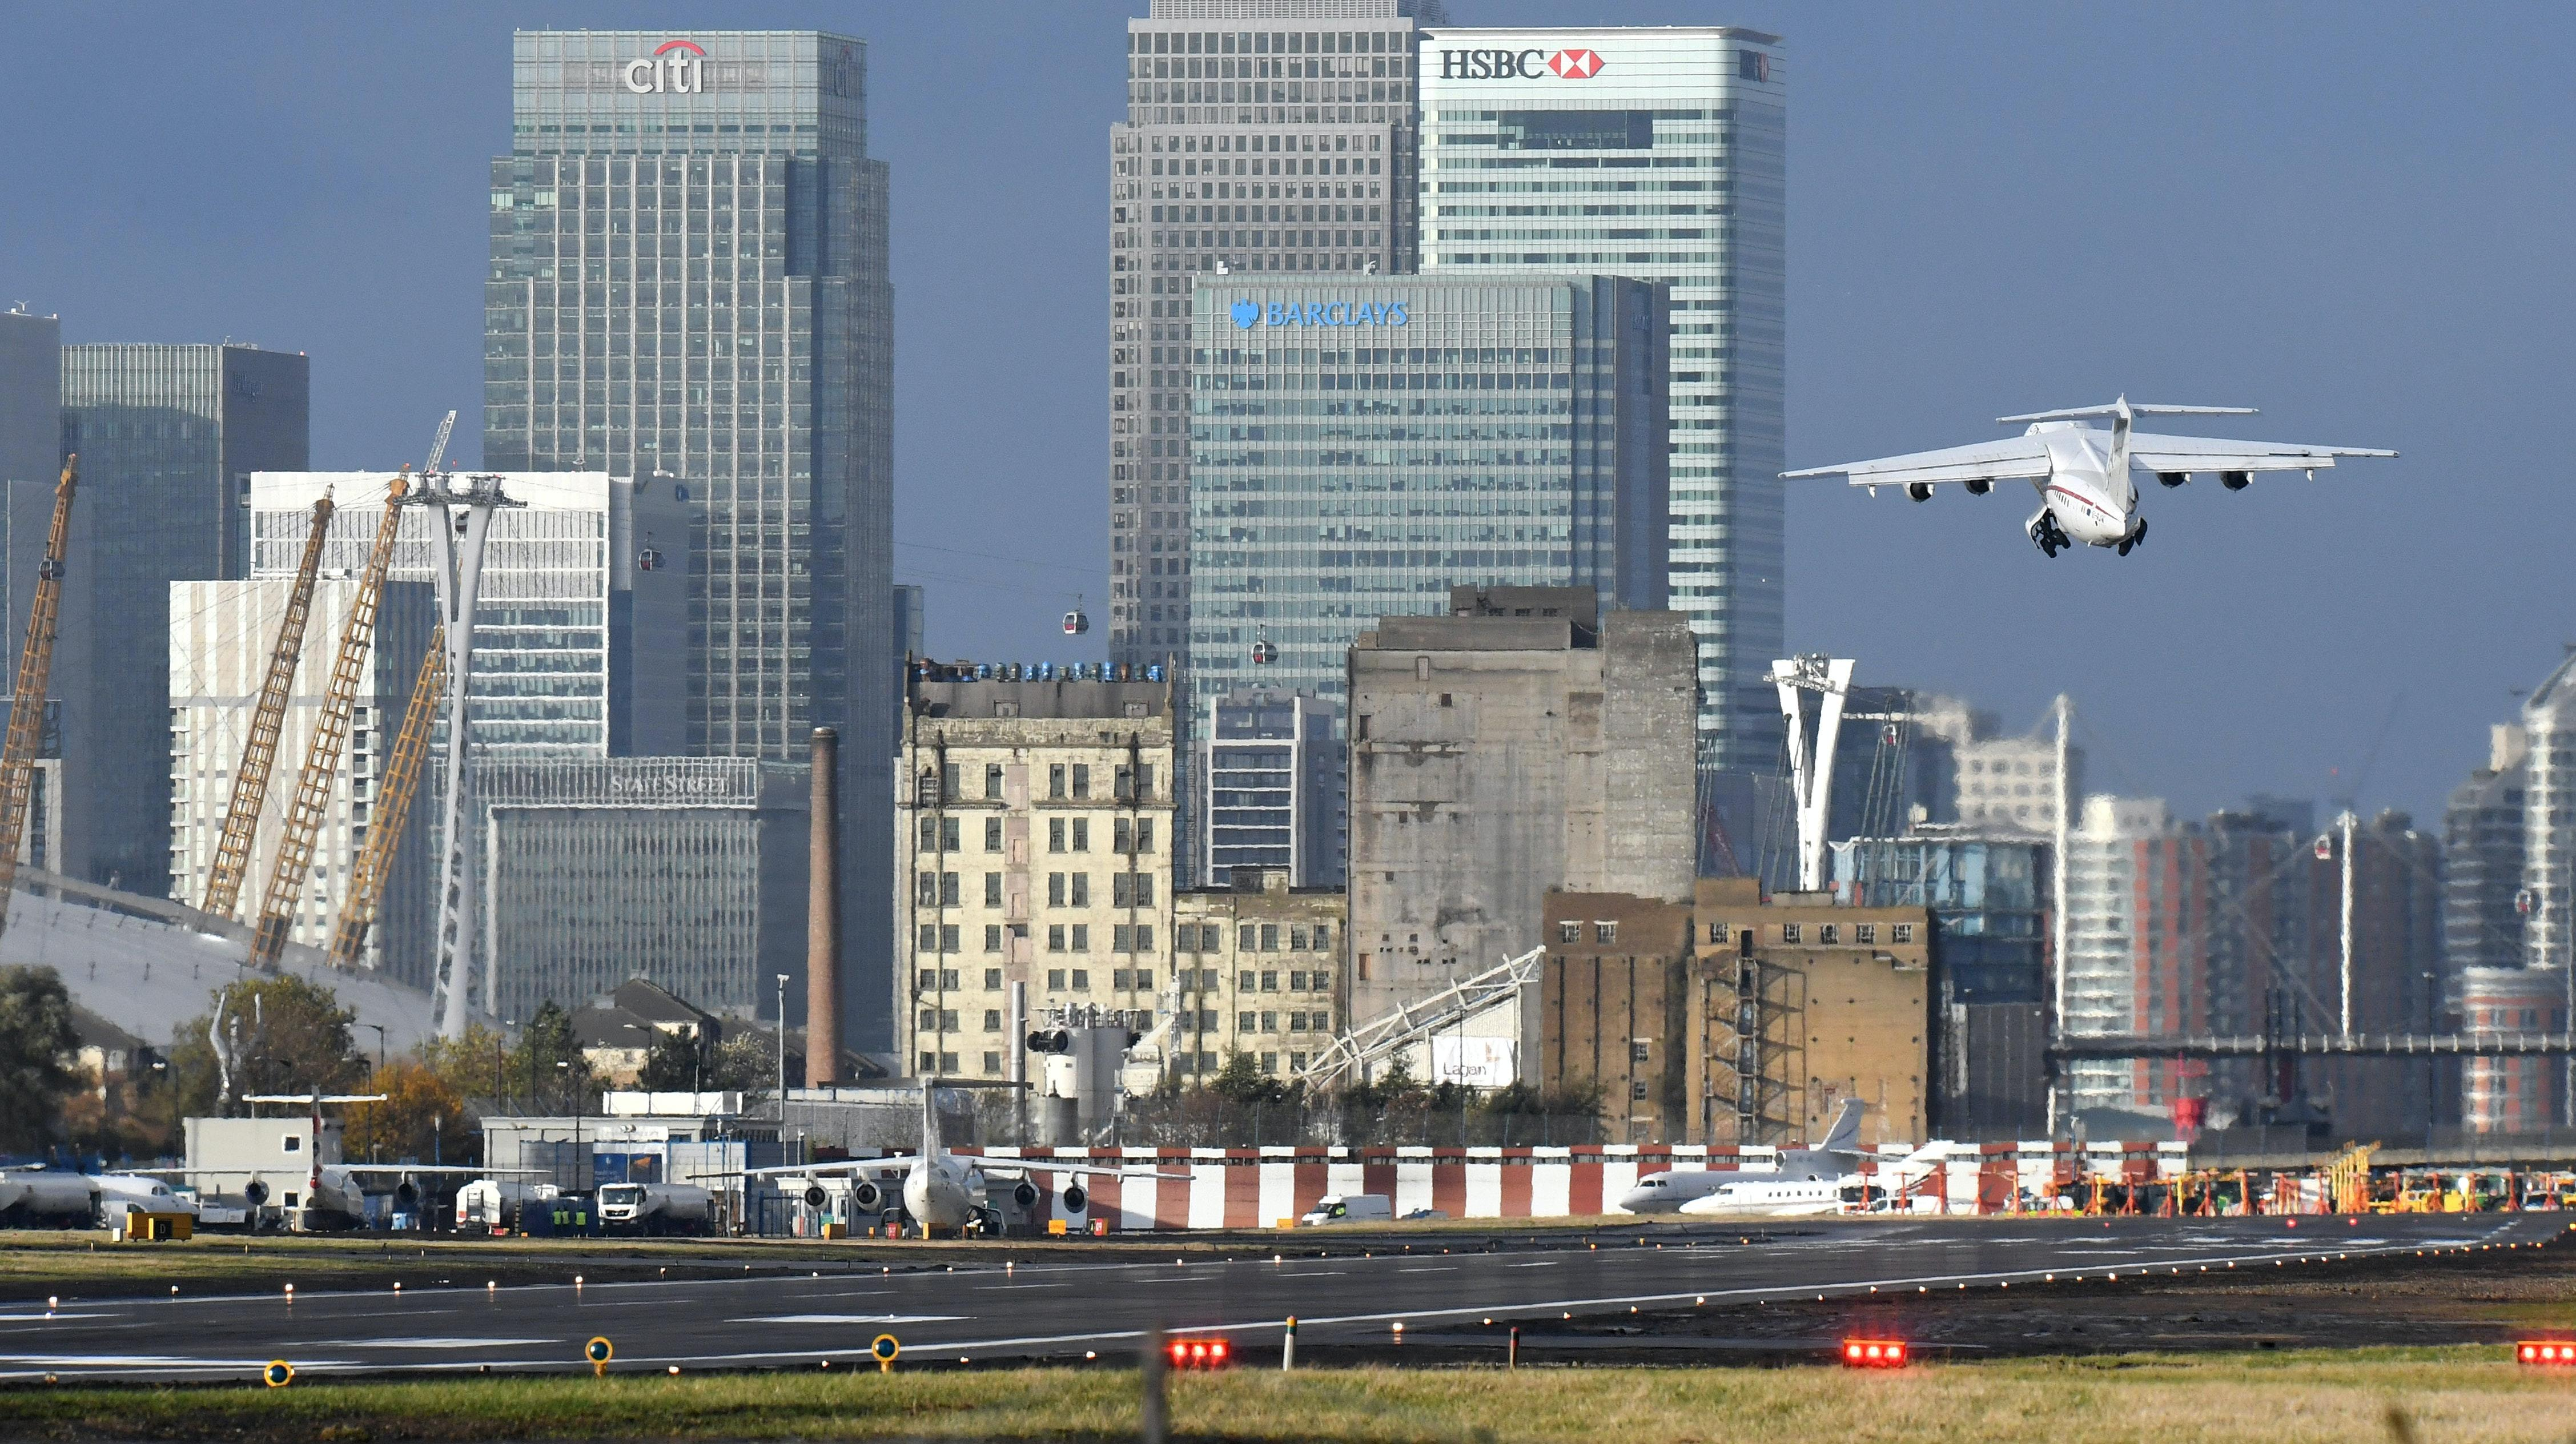 London City Airport reopens after three-month closure